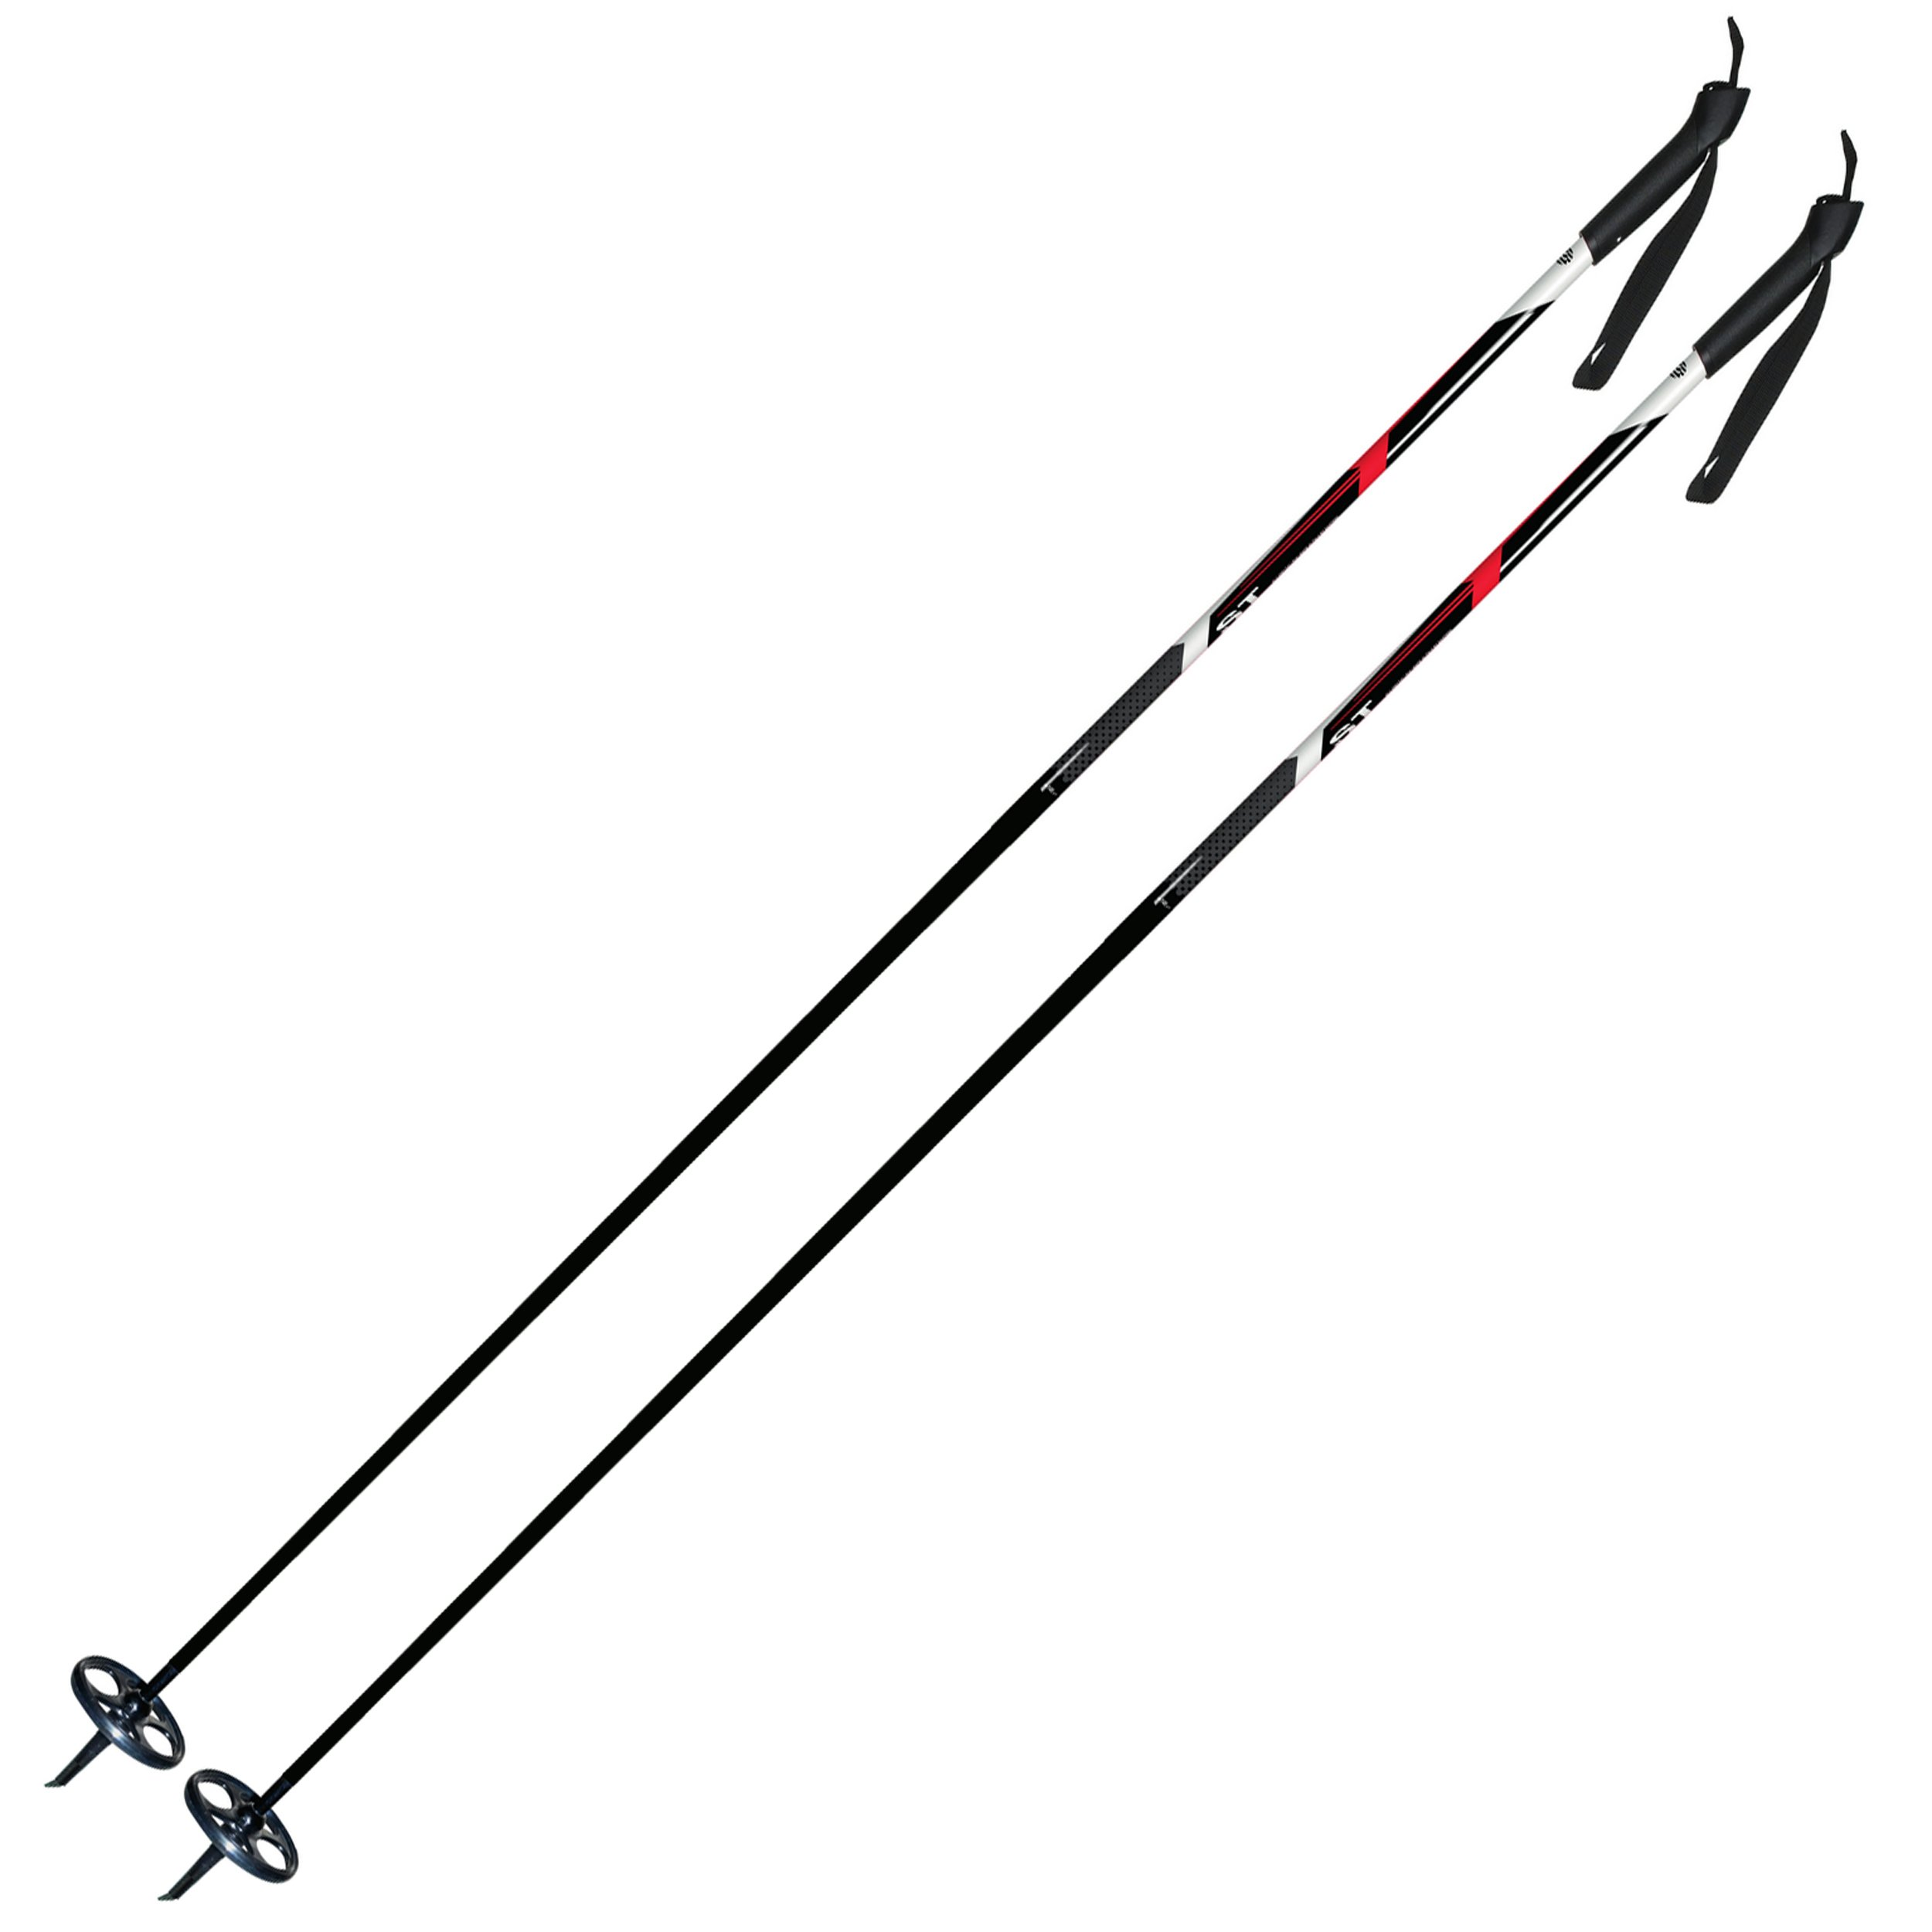 Alpina Sports ASC-ST Snowflake Cross-Country Nordic Ski Poles with Round Baskets, 150cm, Pr. by Alpina